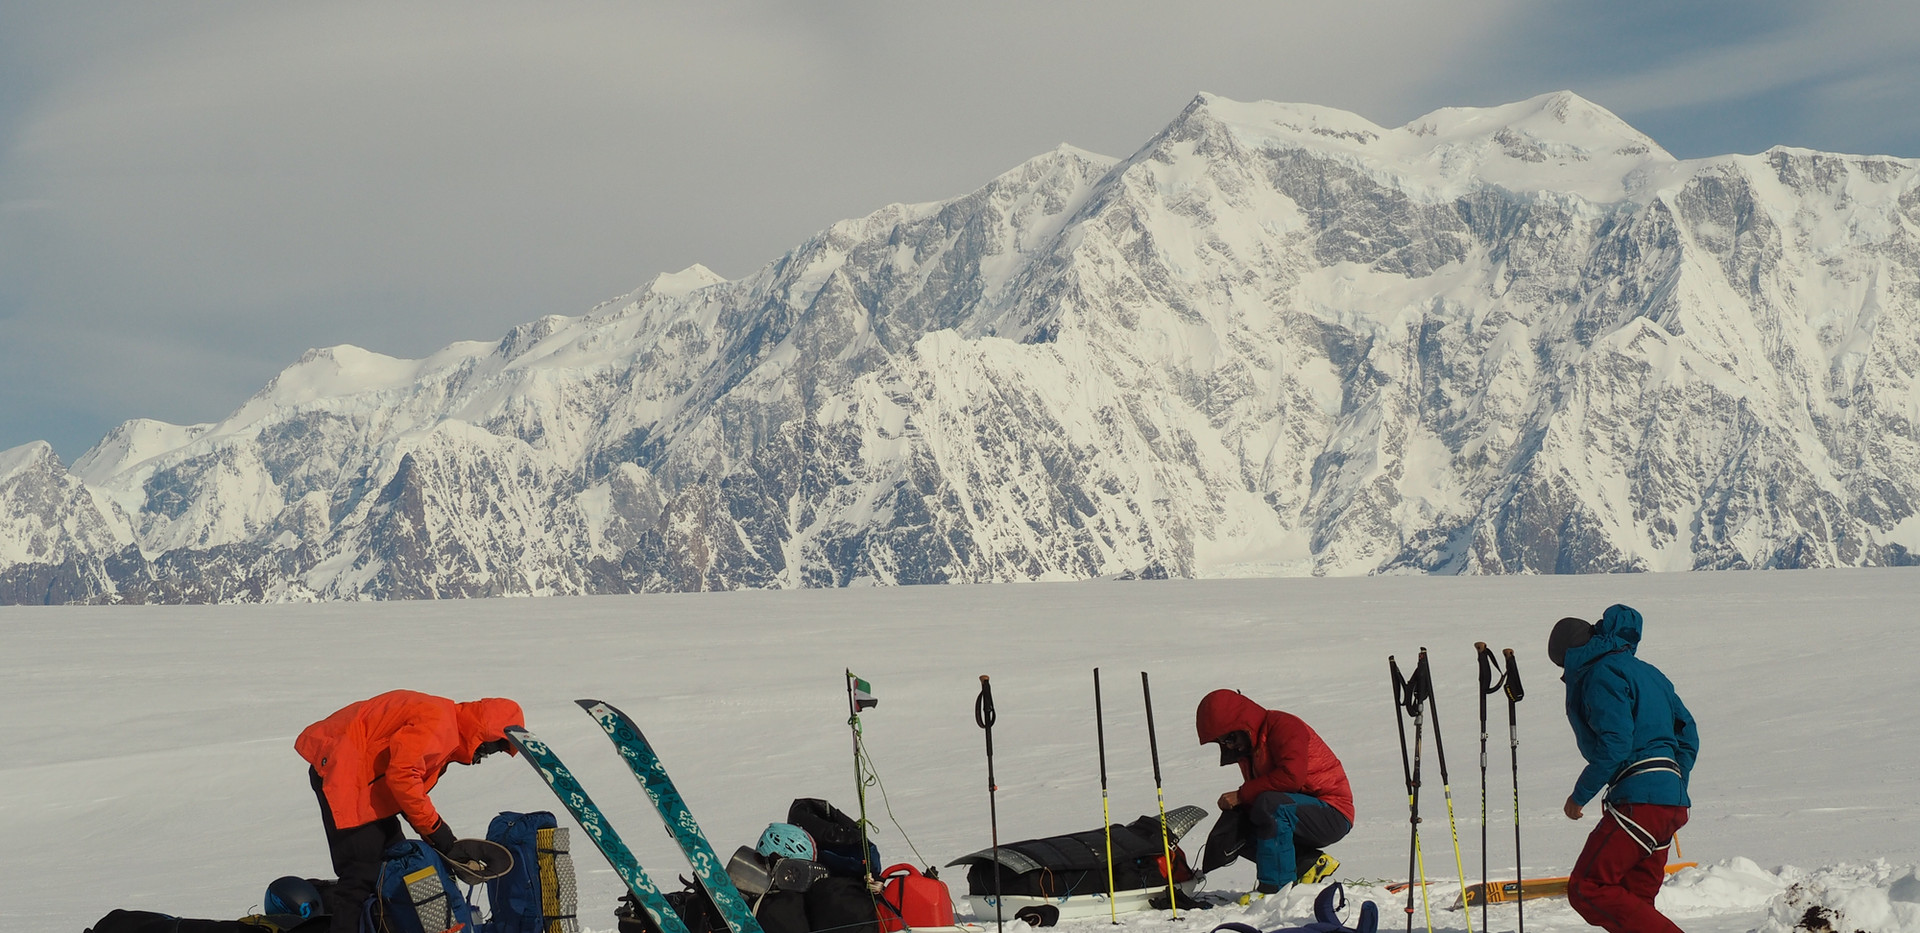 Packing camp in front of Mt Cook